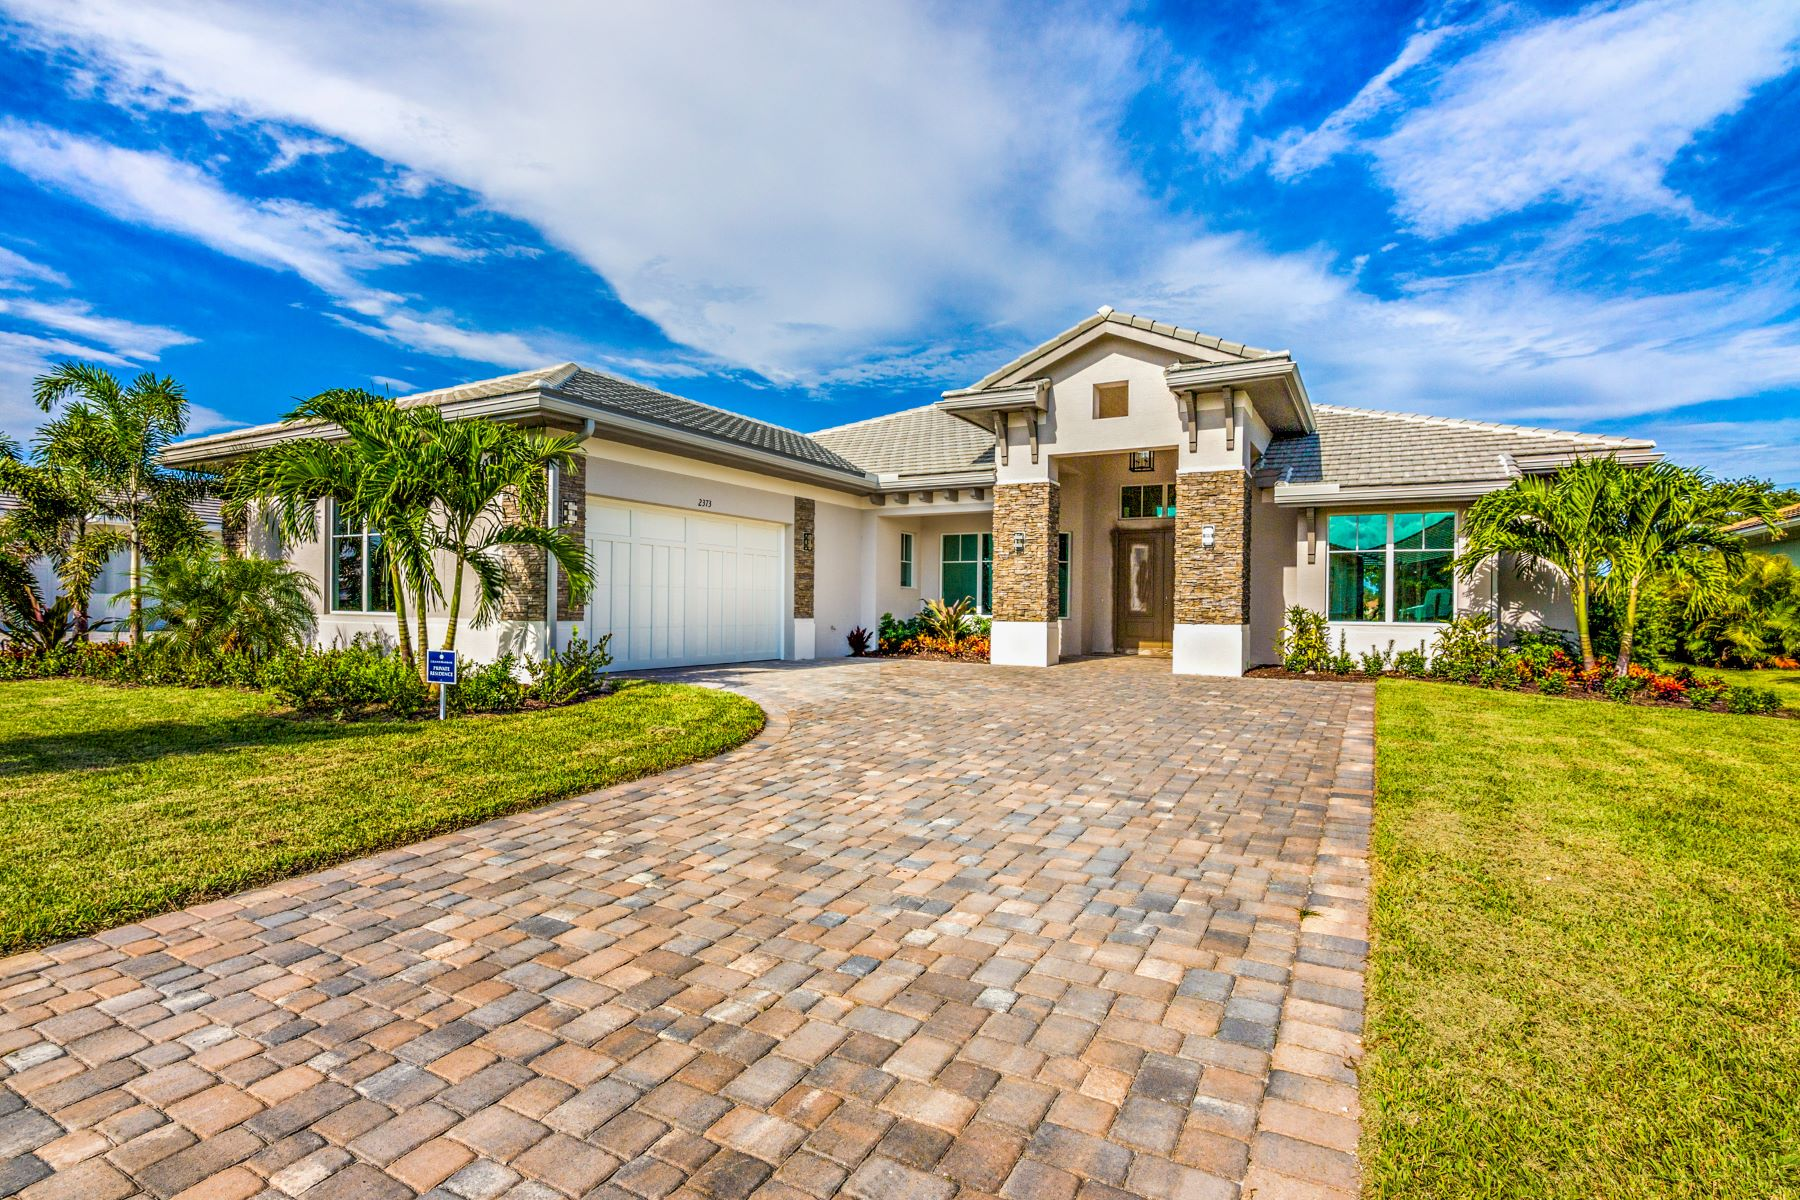 Single Family Homes für Verkauf beim Luxury New Construction in Grand Harbor 2356 Grand Harbor Reserve Square Vero Beach, Florida 32967 Vereinigte Staaten